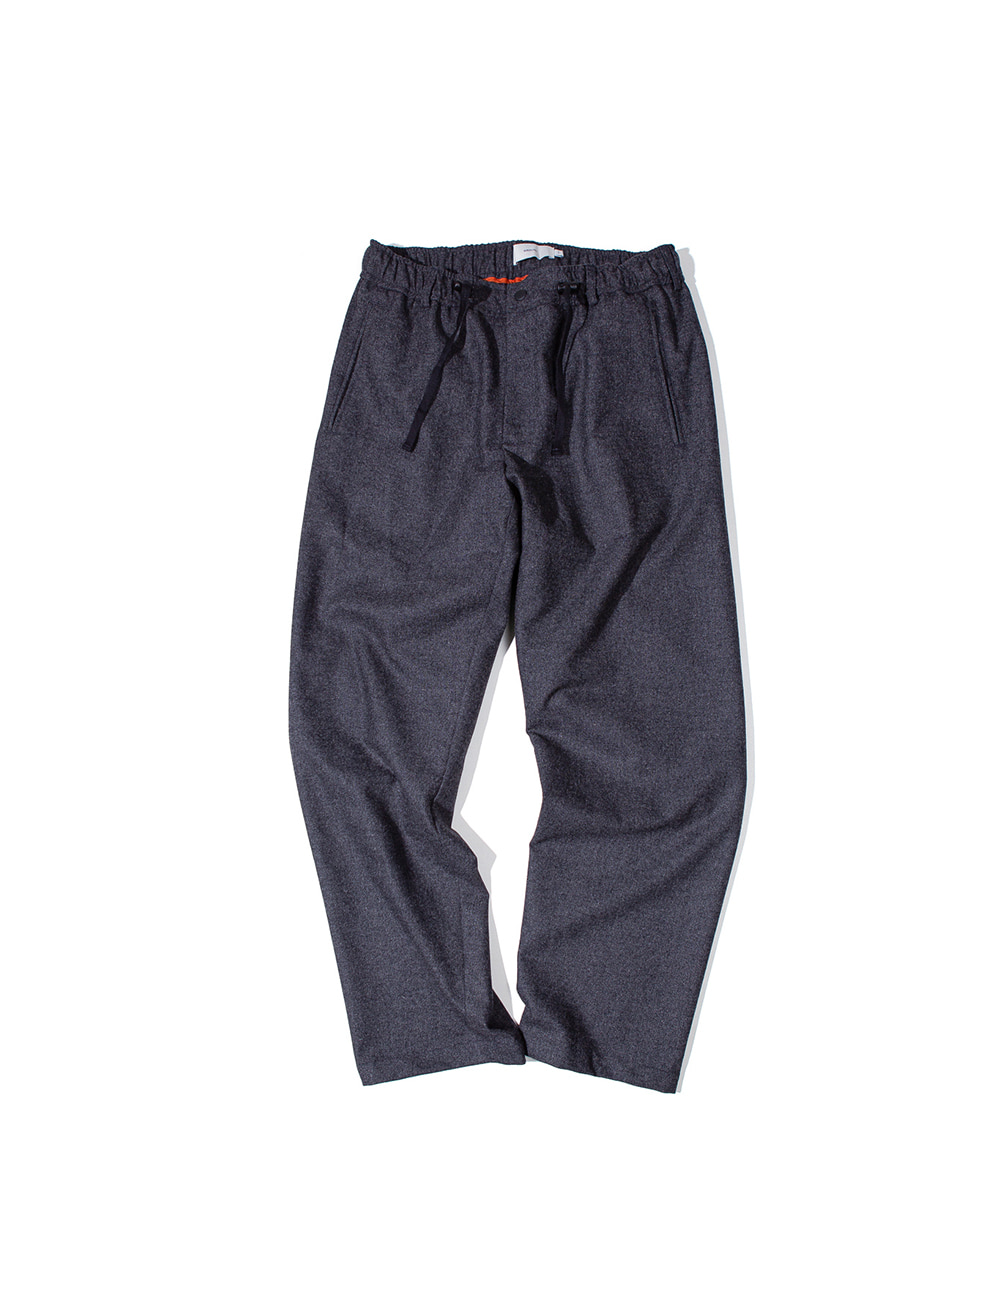 [Ourselves] FINE WOOL WIDE SLUMBER PANTS (Charcoal)